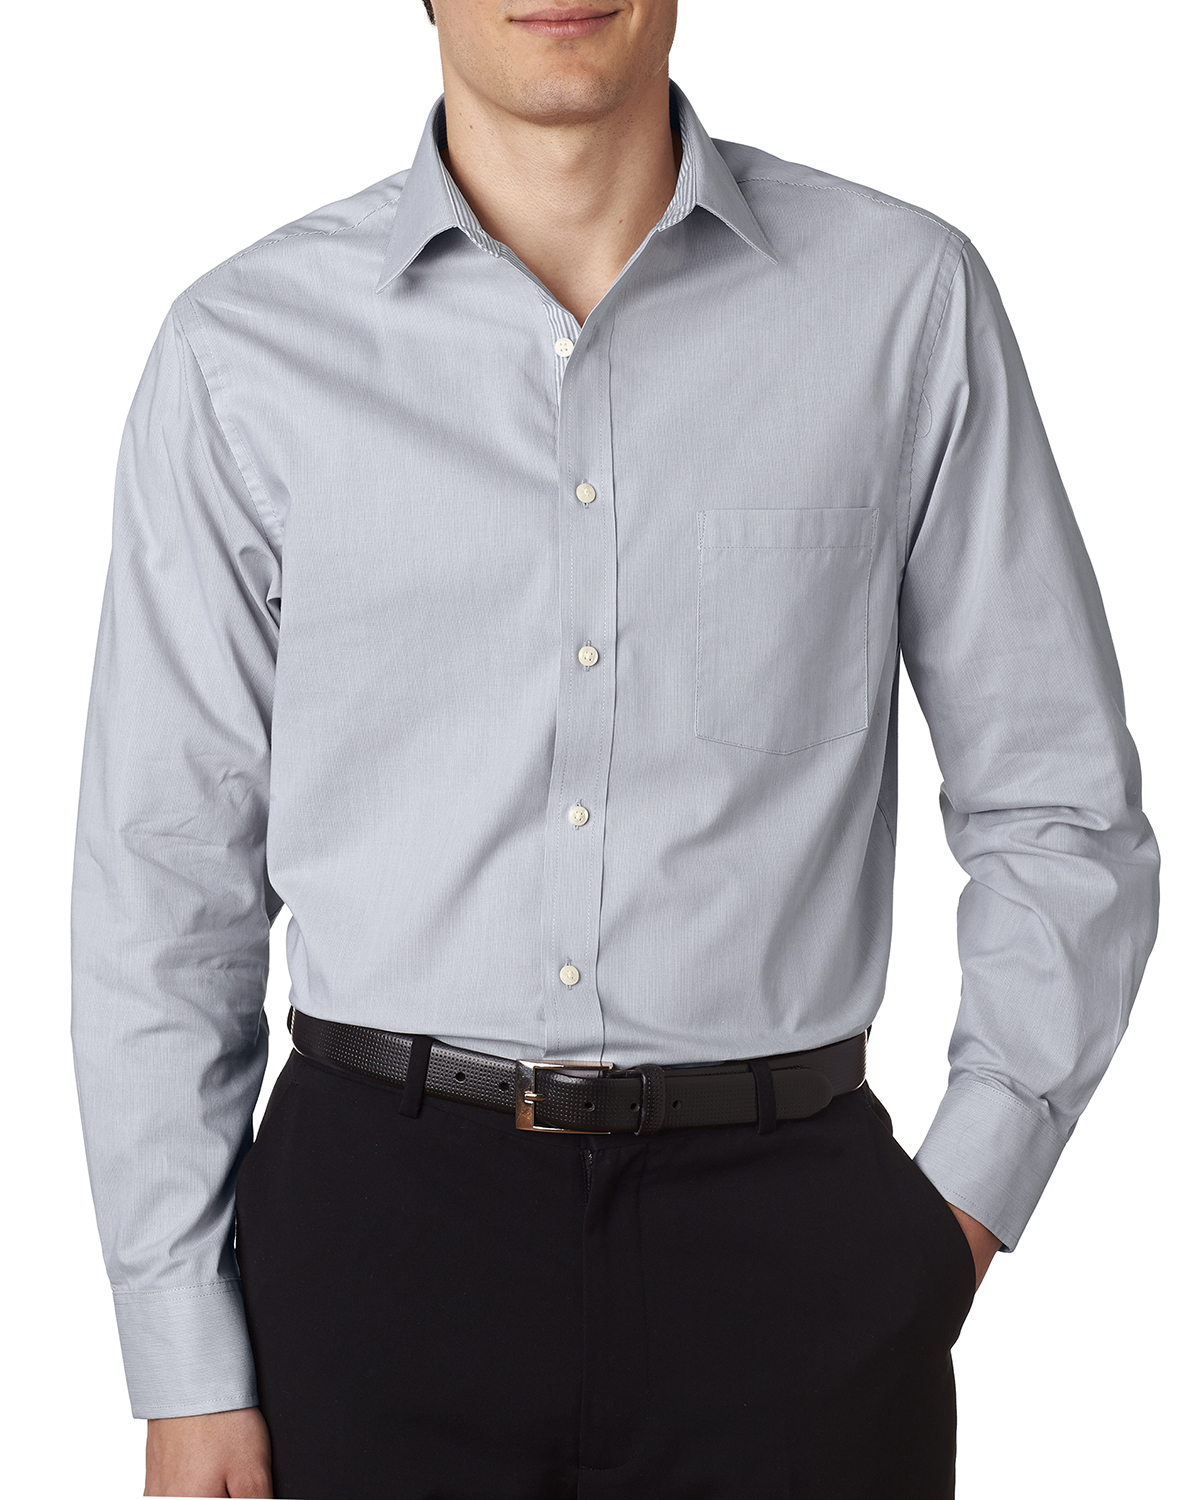 Van Heusen V0235 - Men's Long-Sleeve Feather Stripe Woven Shirt